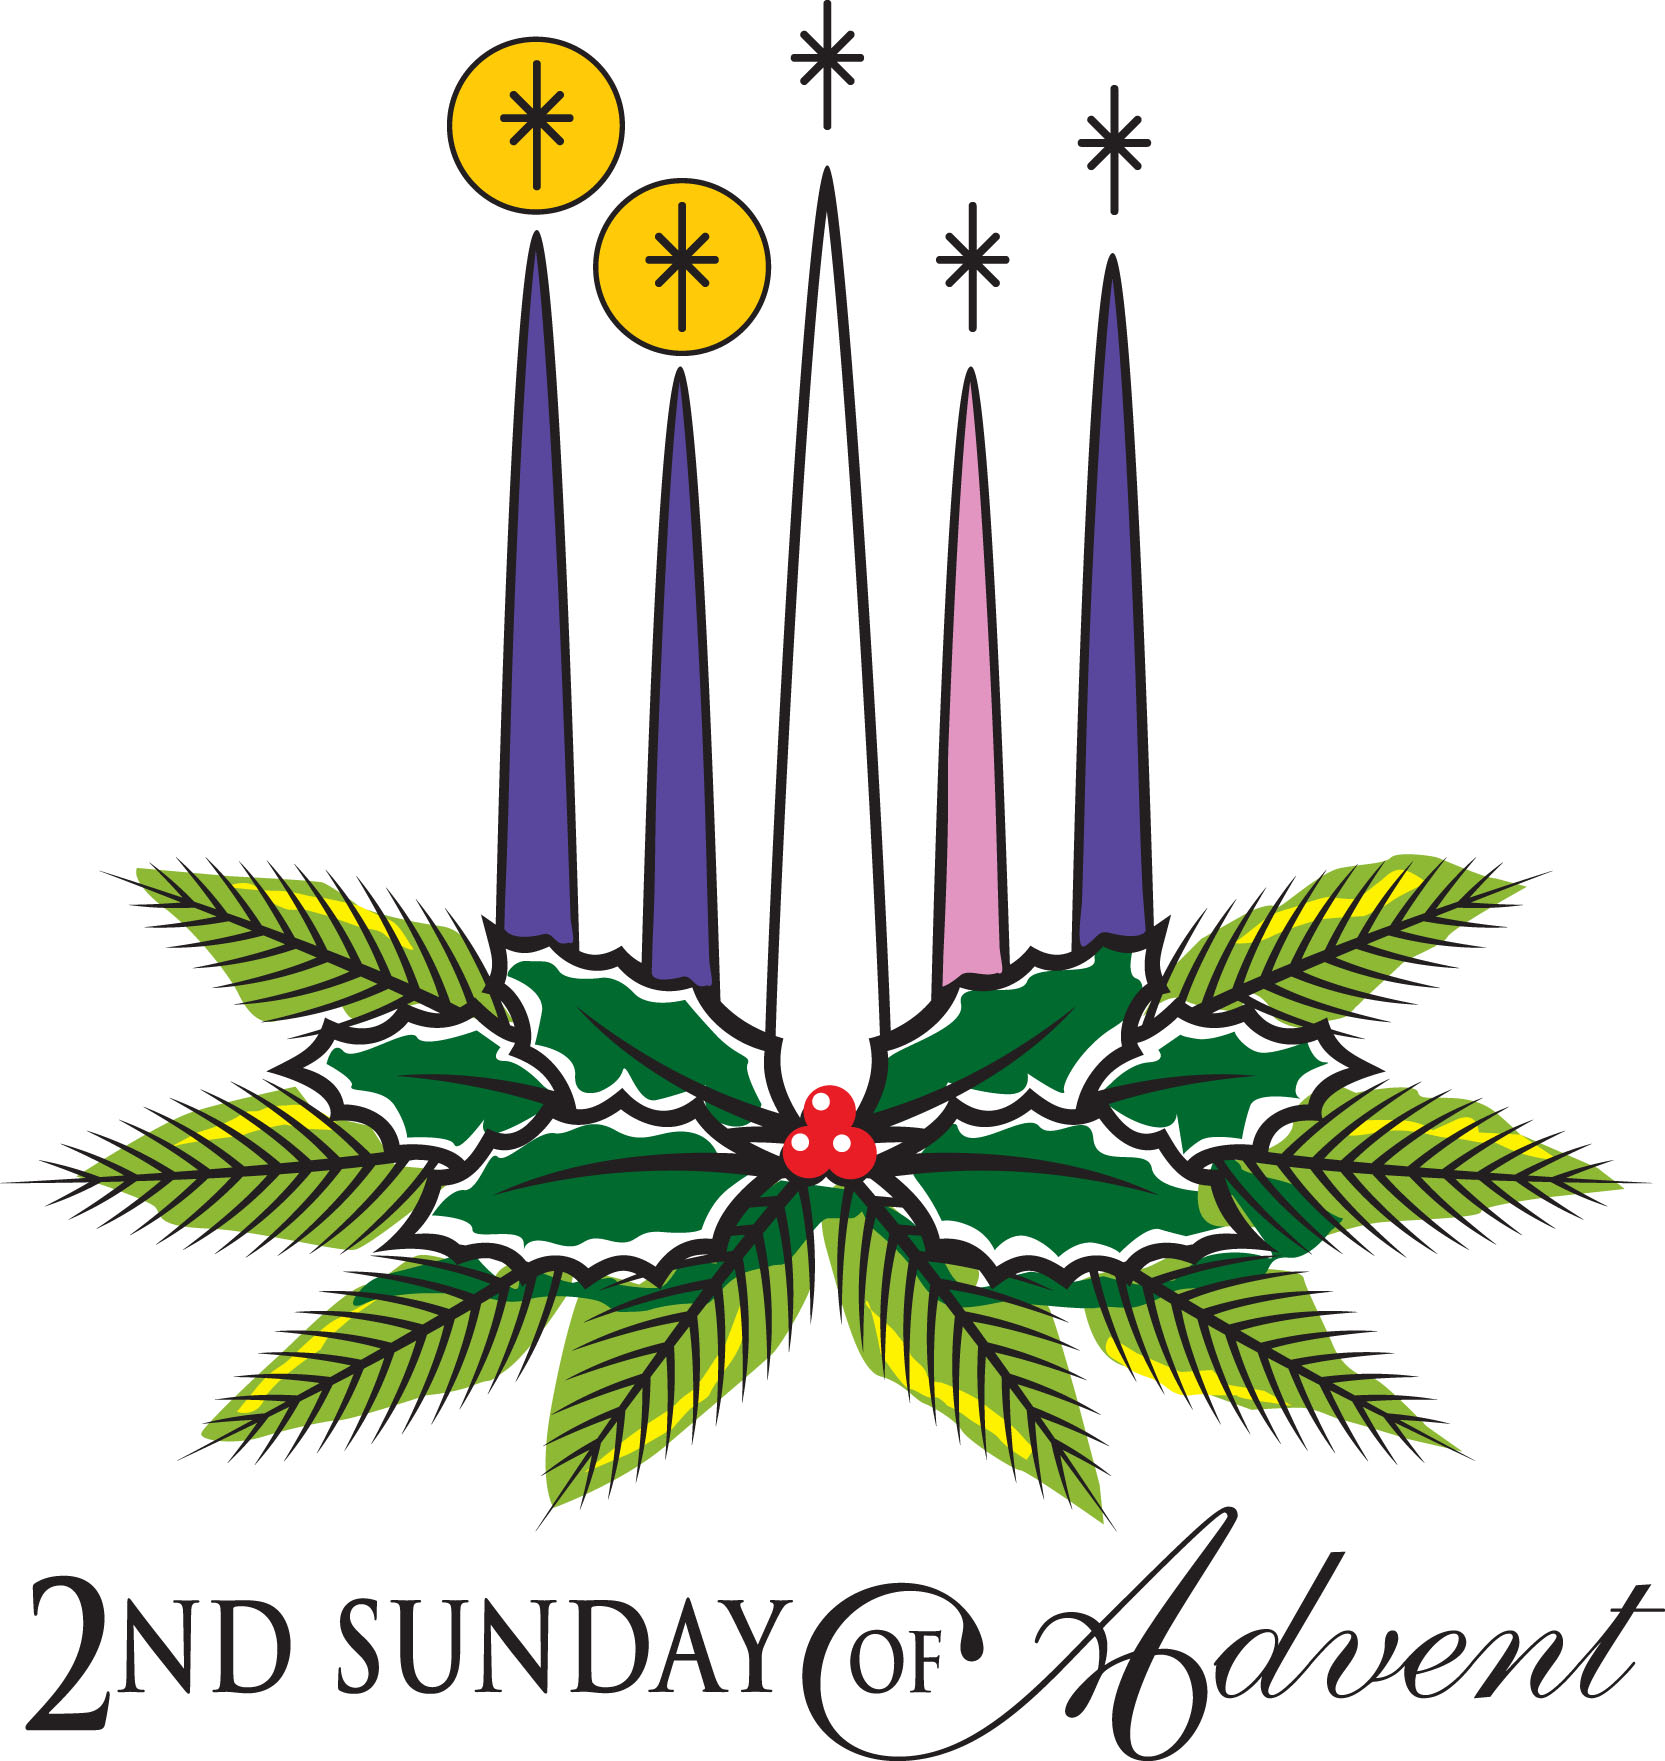 Advent Candle Images Clip Art 1st sunday in advent clipart - clipart ...